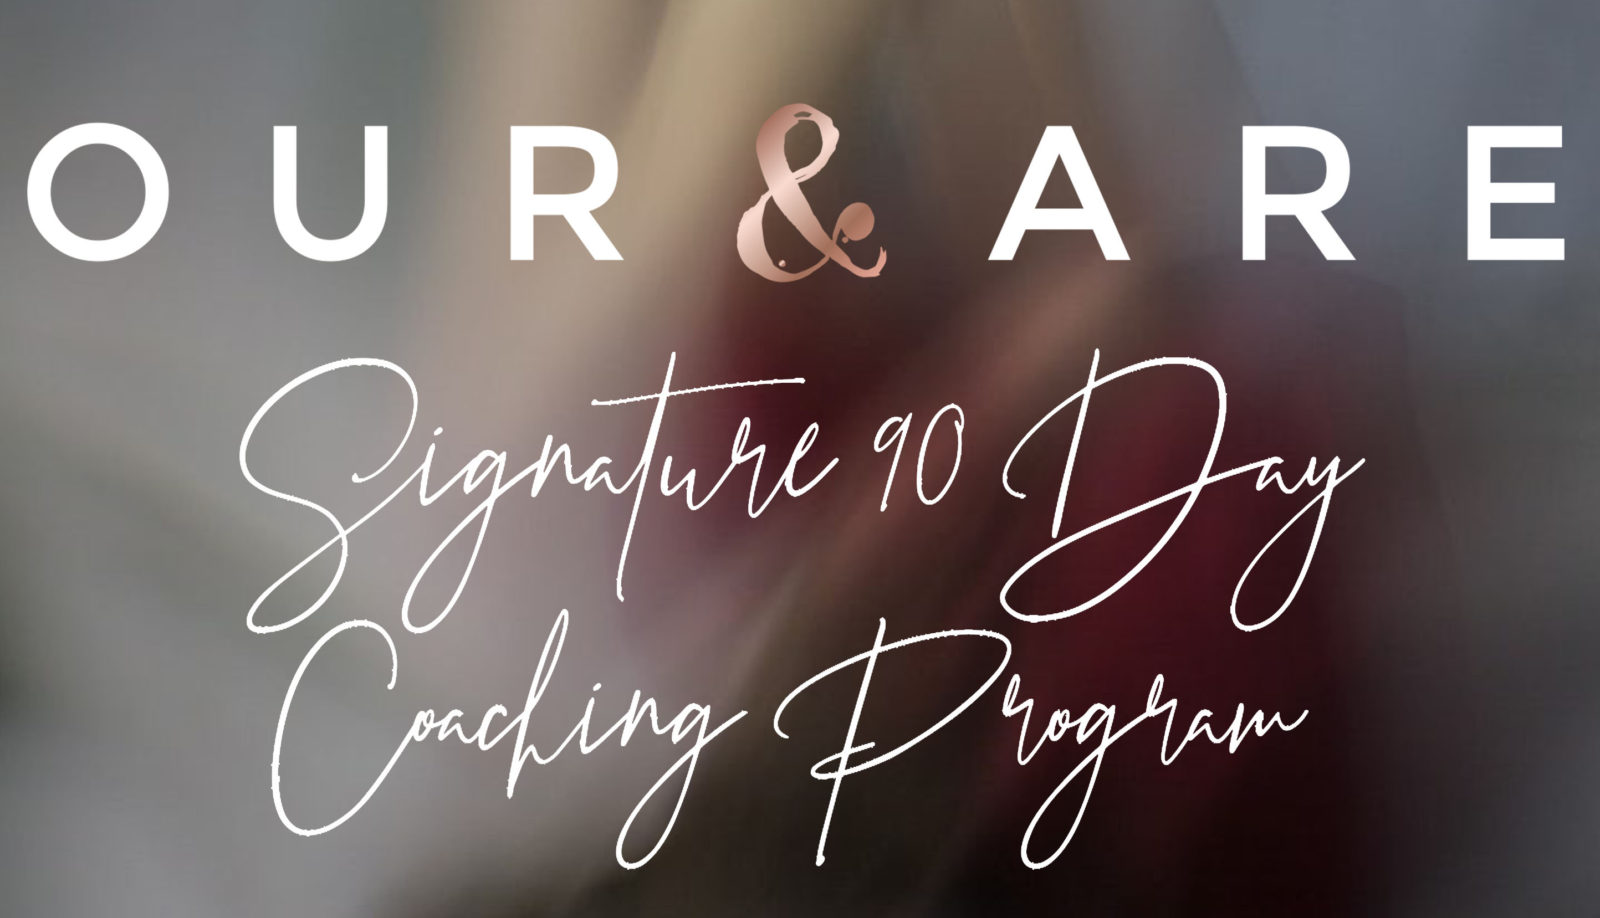 our and are signature 90 day coaching program blurr